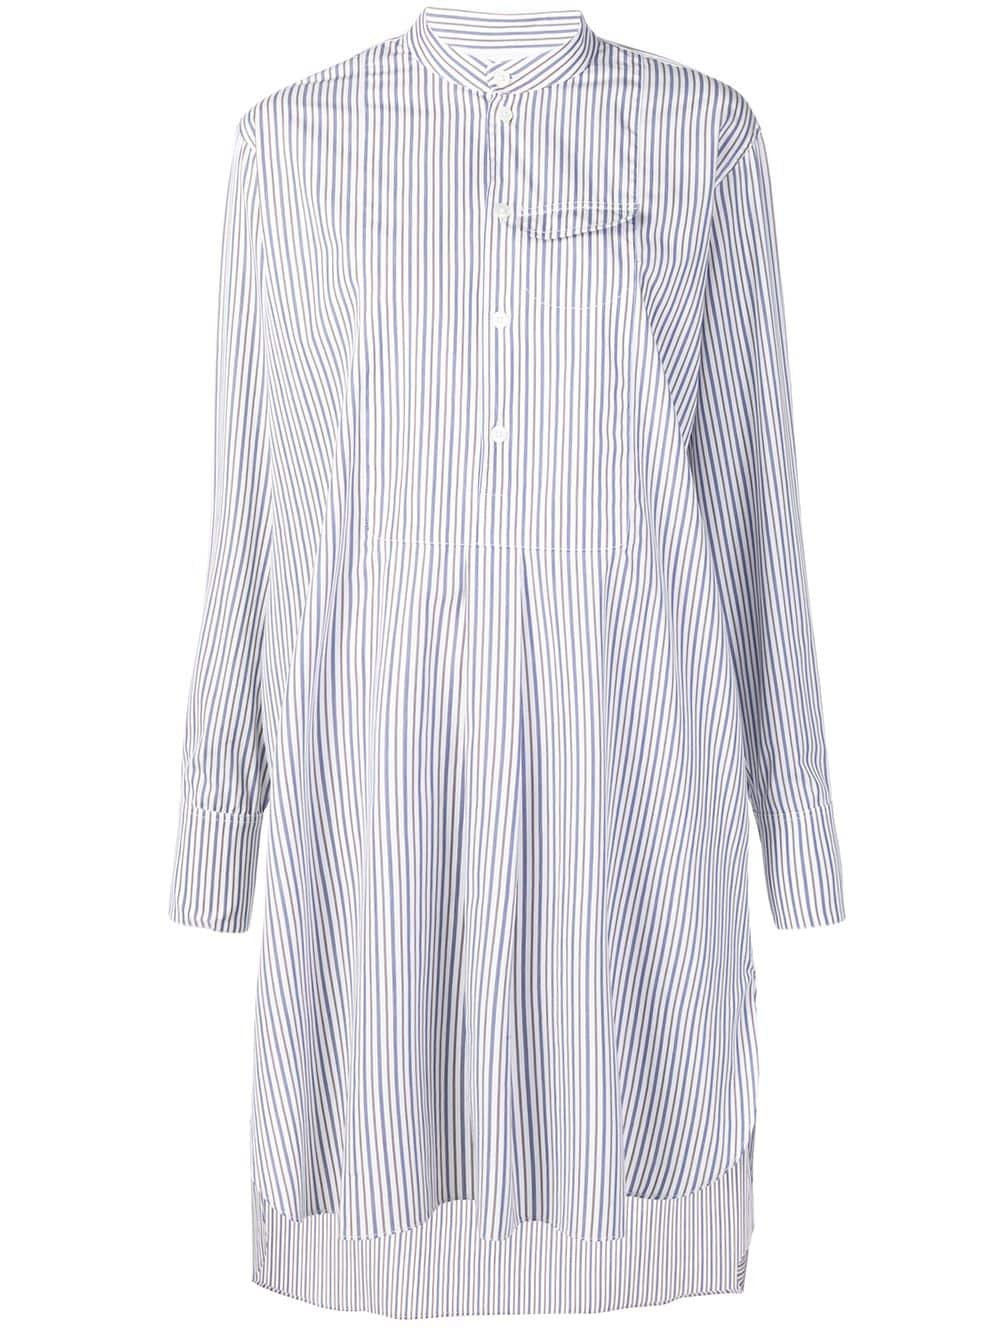 61f1ab088f4 Chemisier Dress With White And Blue Stripes - MARNI - Russocapri